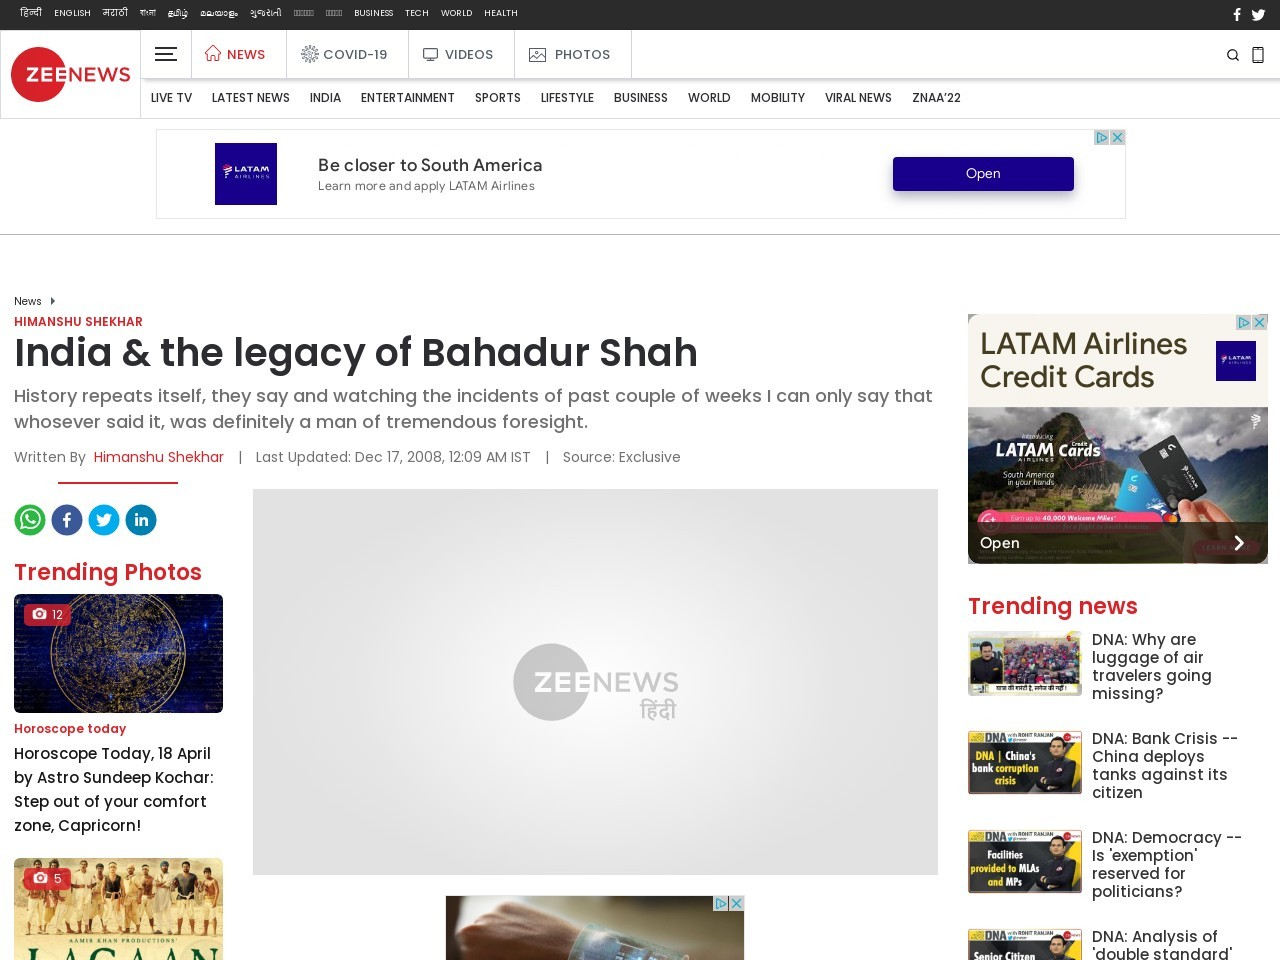 IPL 2017 auction: Mumbai to host event for 10th edition on February 20